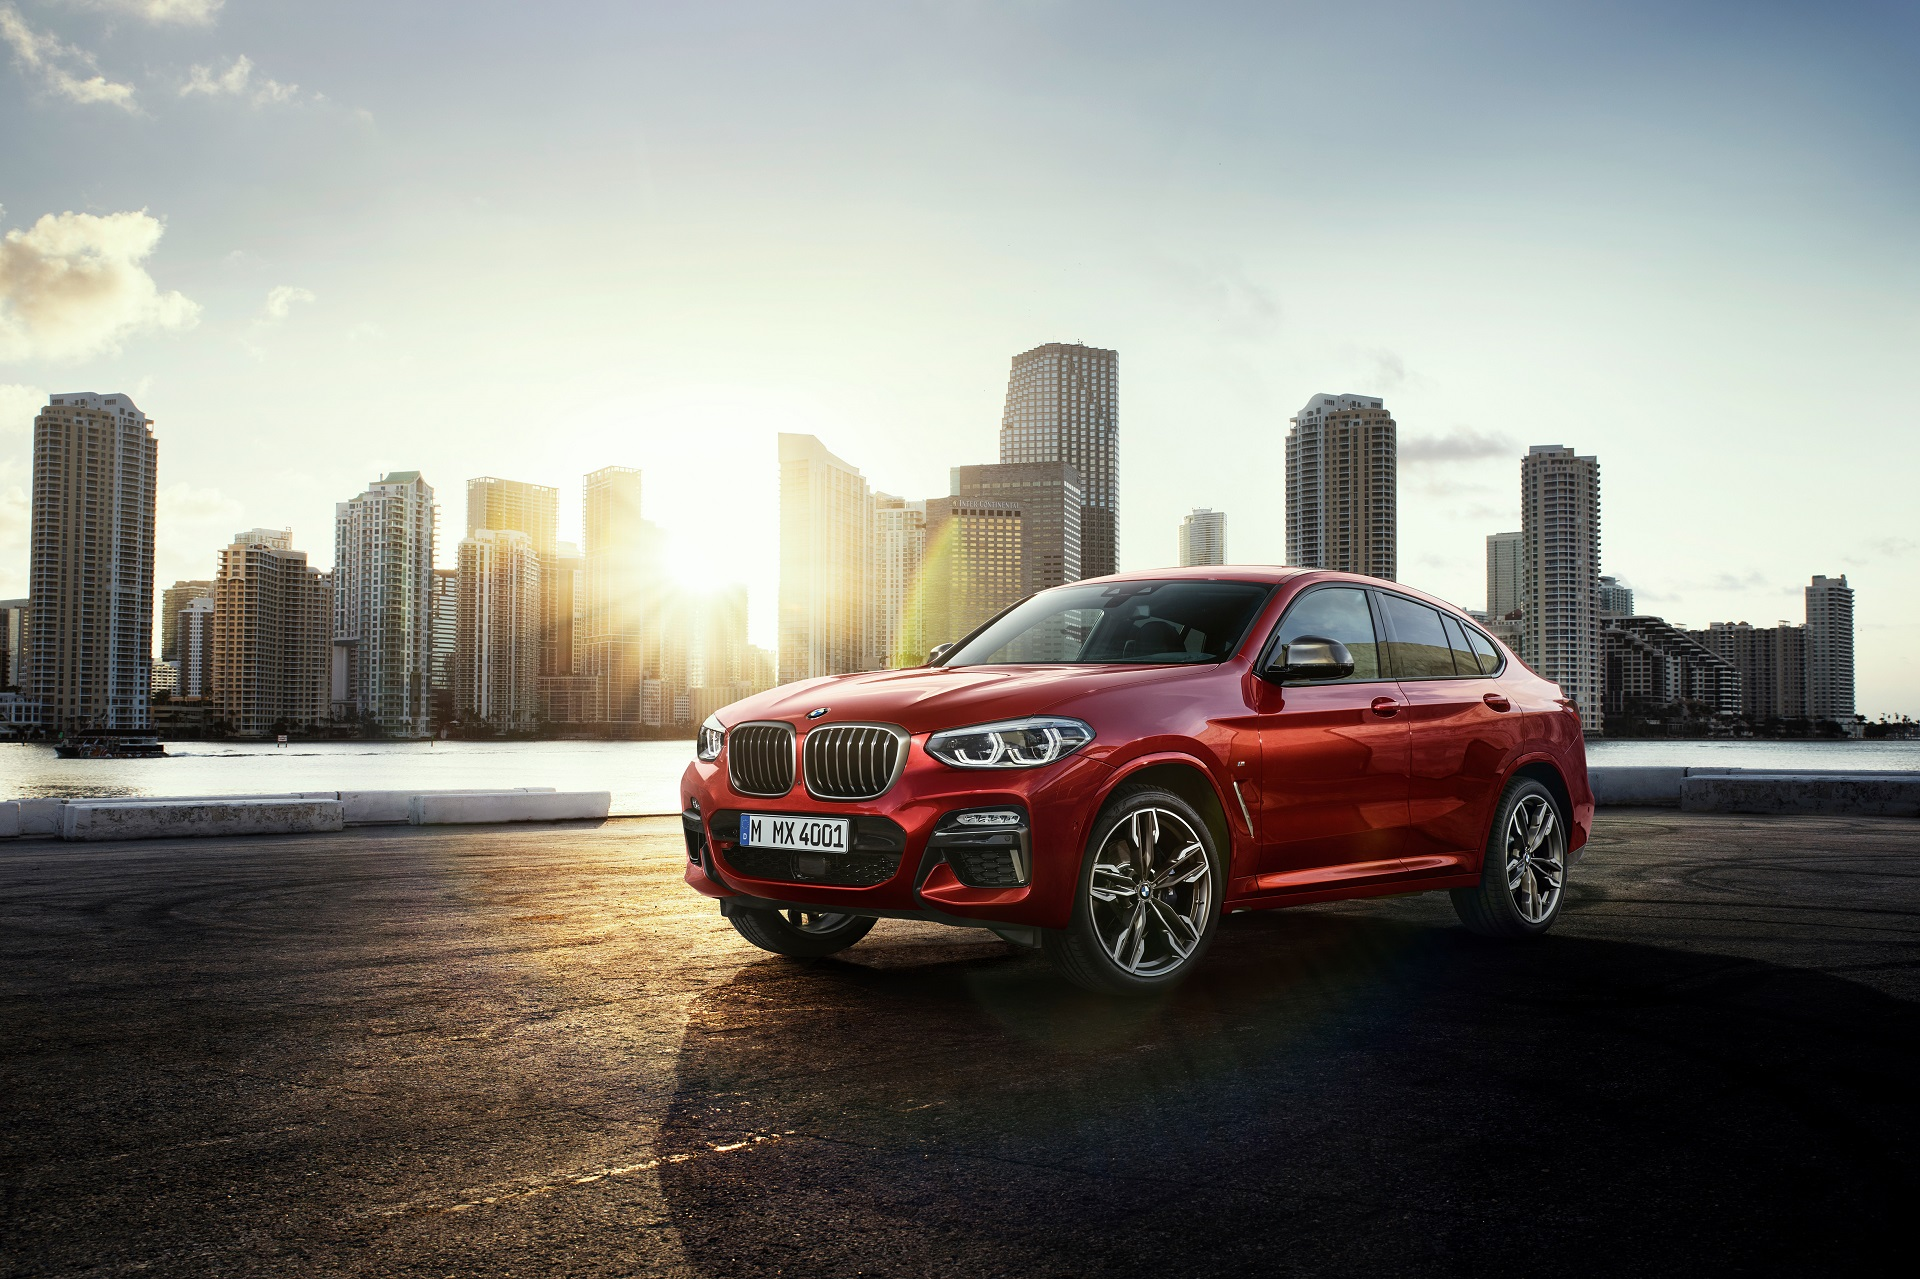 BMW X4 Gets The All-New Look Inside and Out